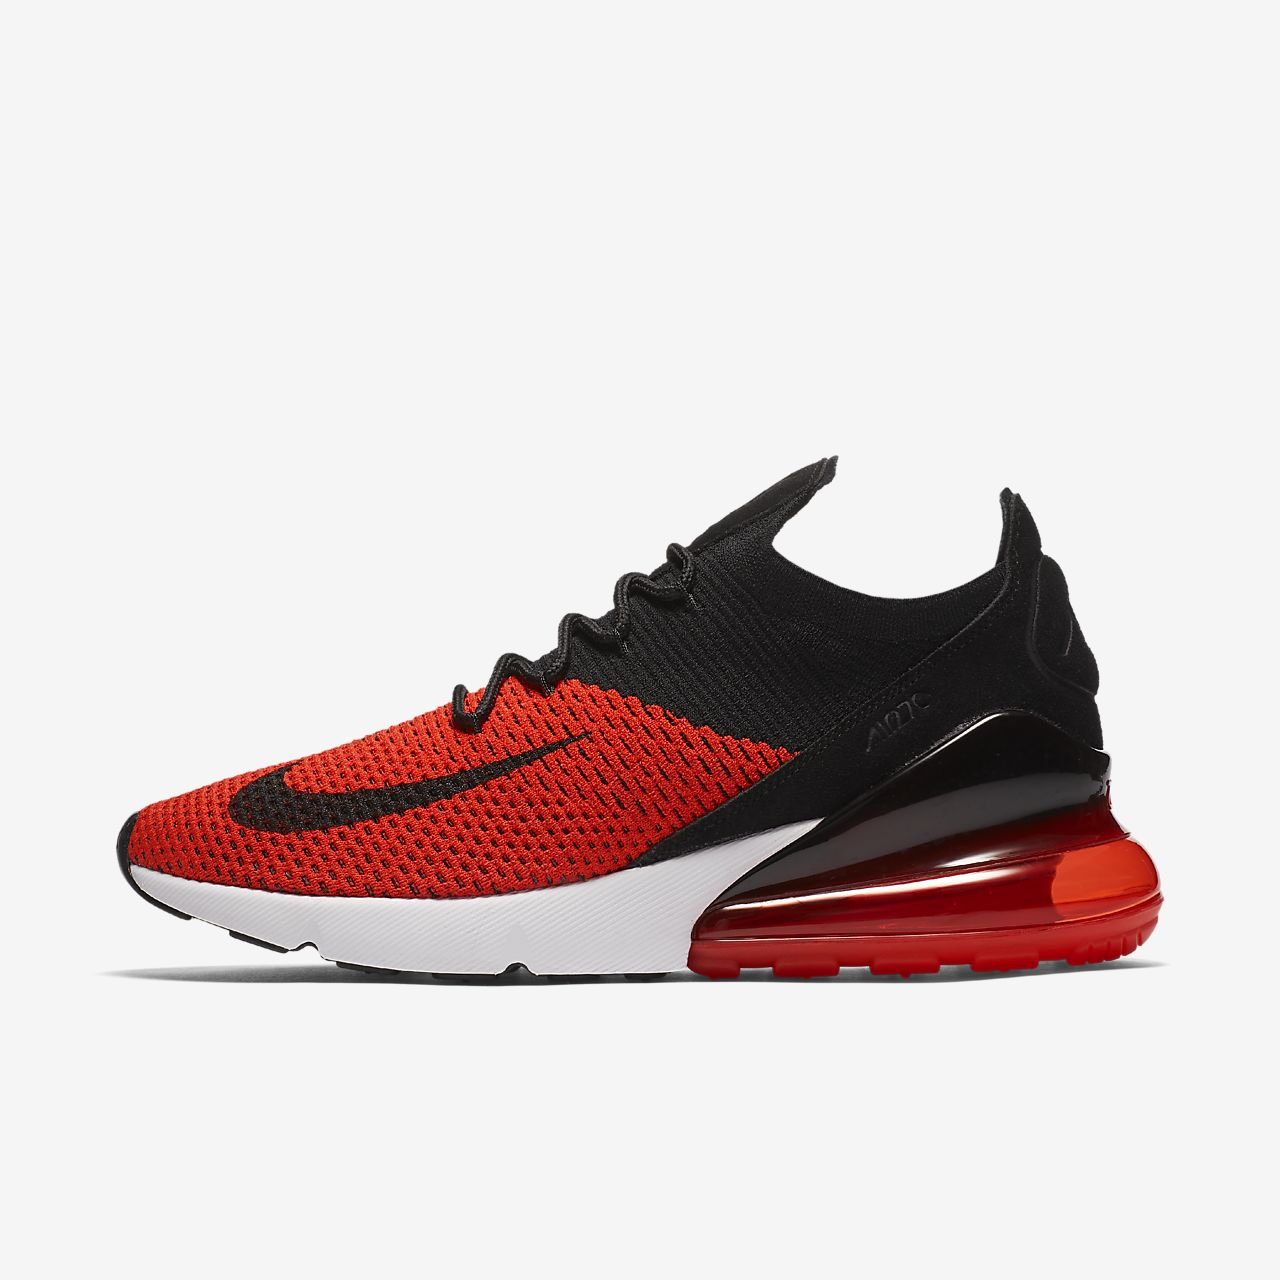 free shipping 2be7c 23be8 ... Nike Air Max 270 Flyknit Mens Shoe